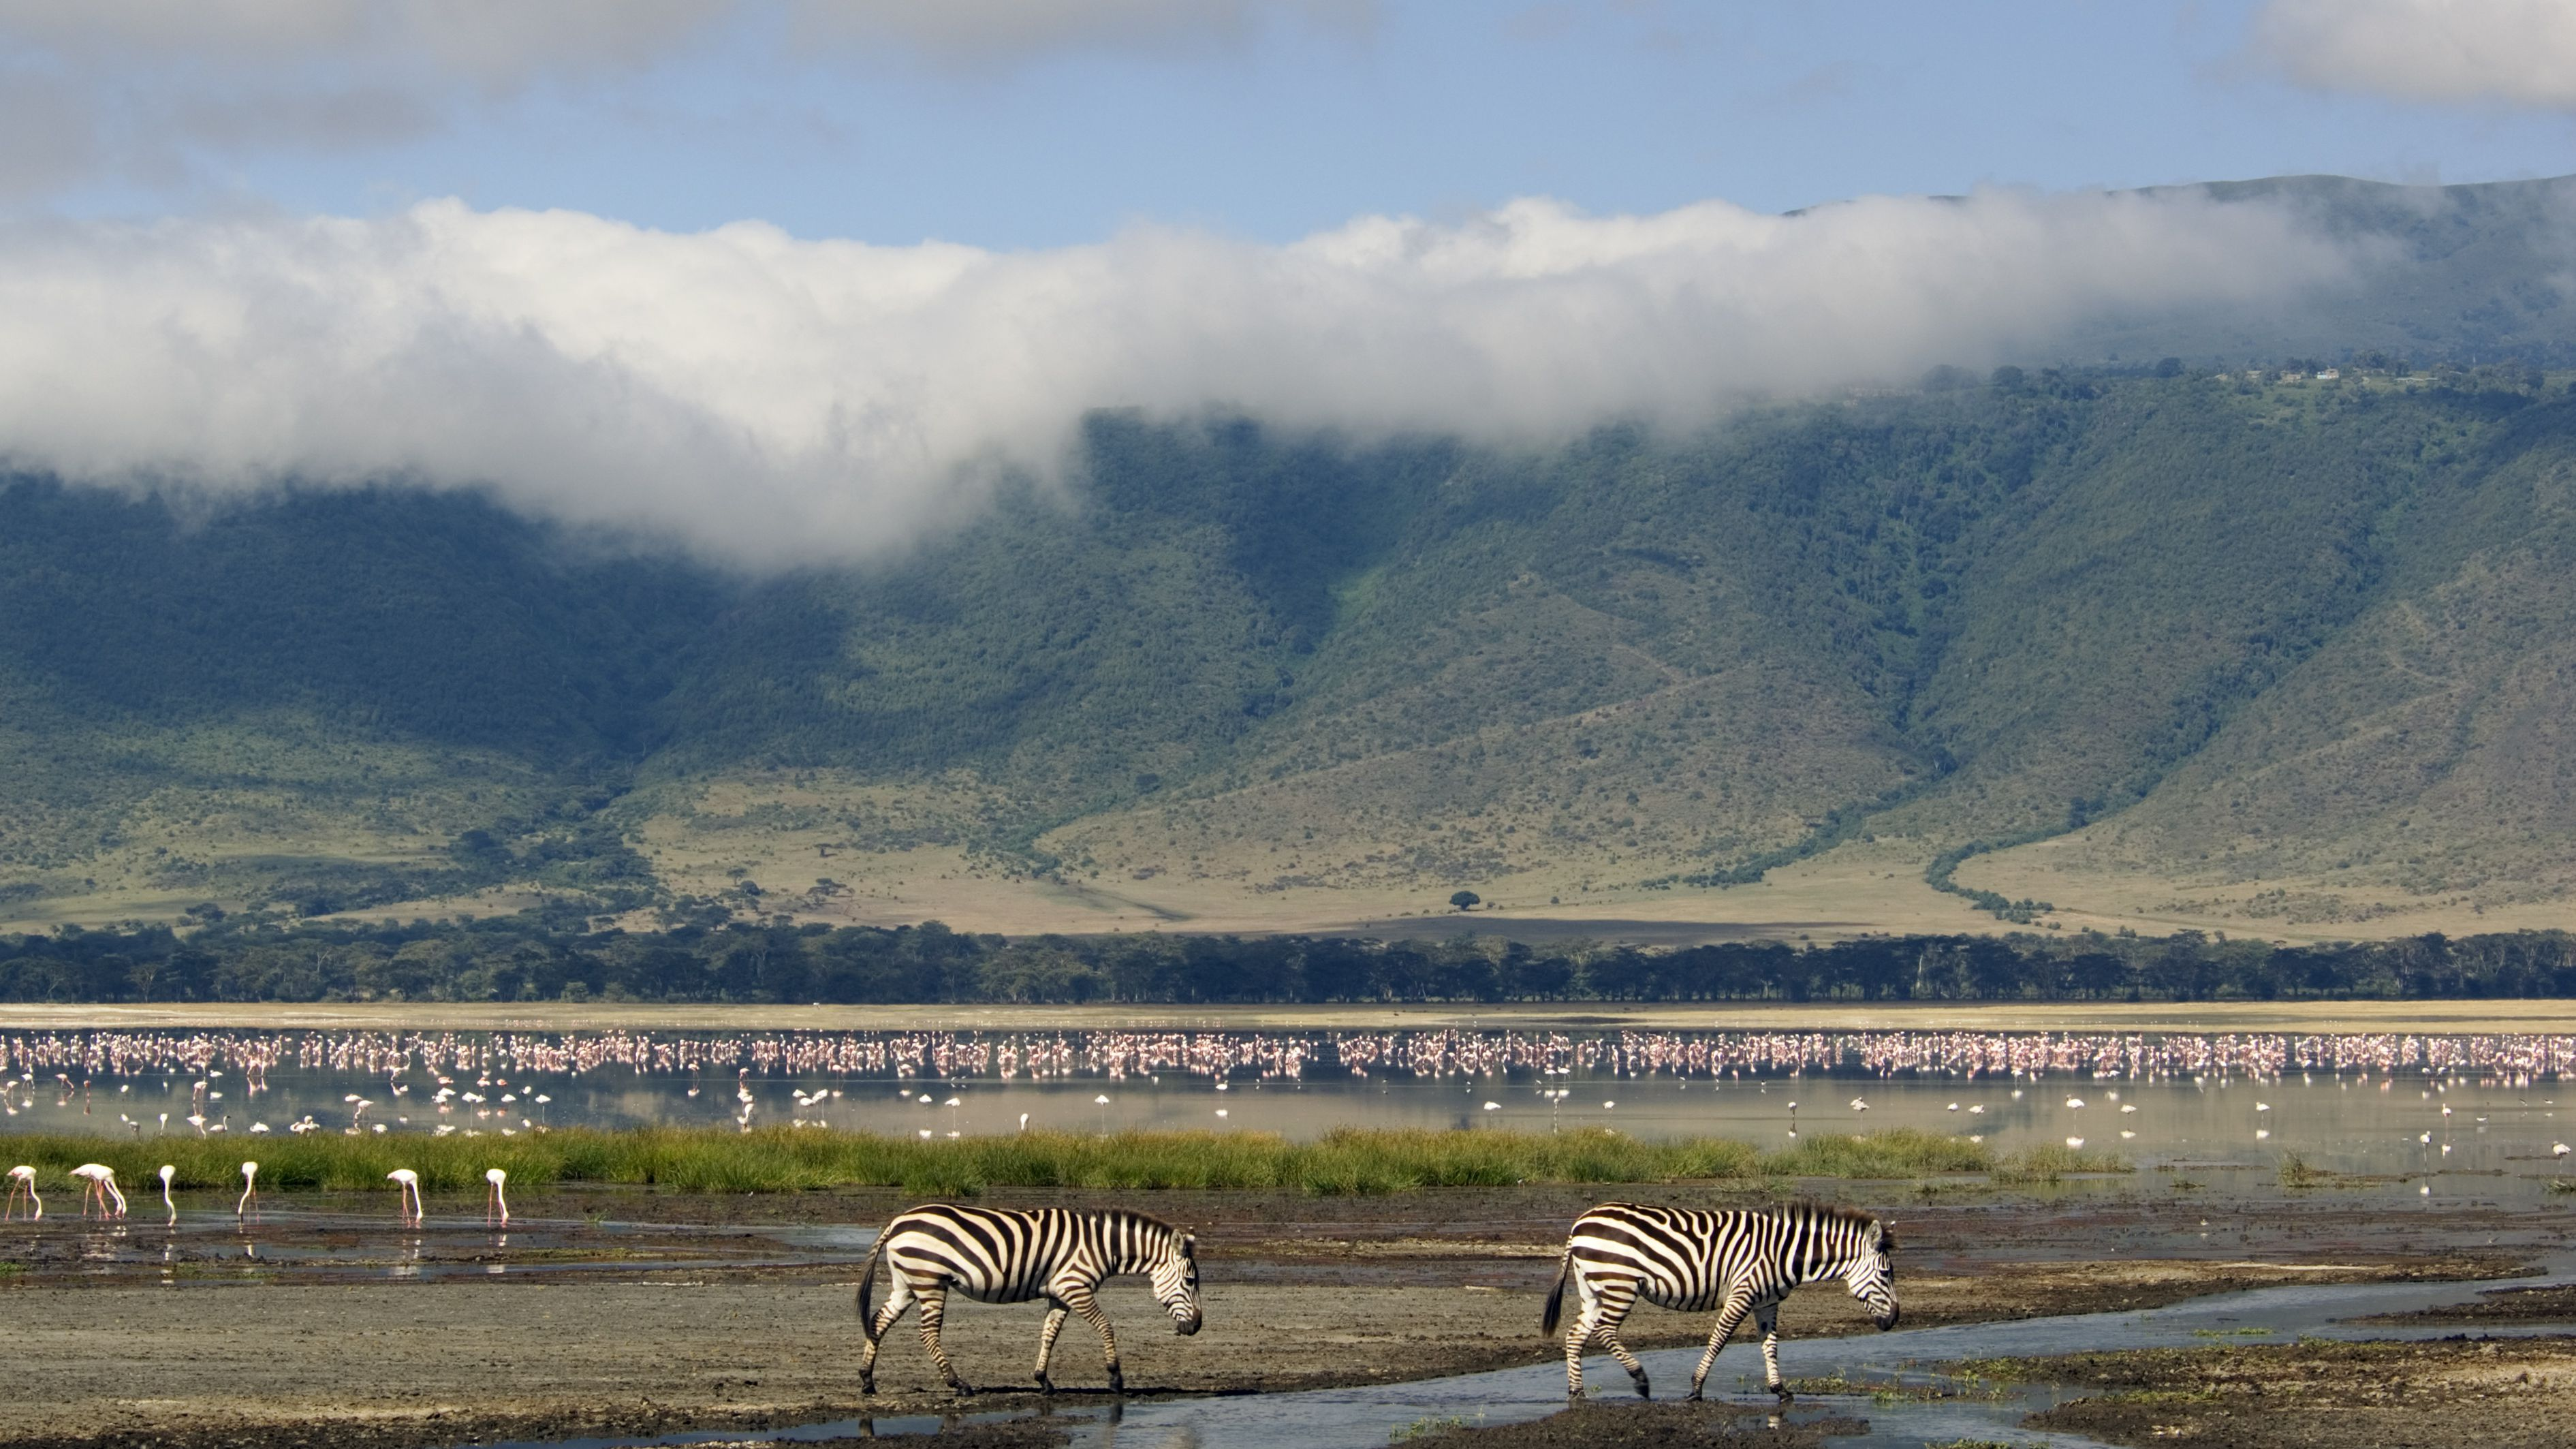 Ngorongoro Conservation Area: The Complete Guide